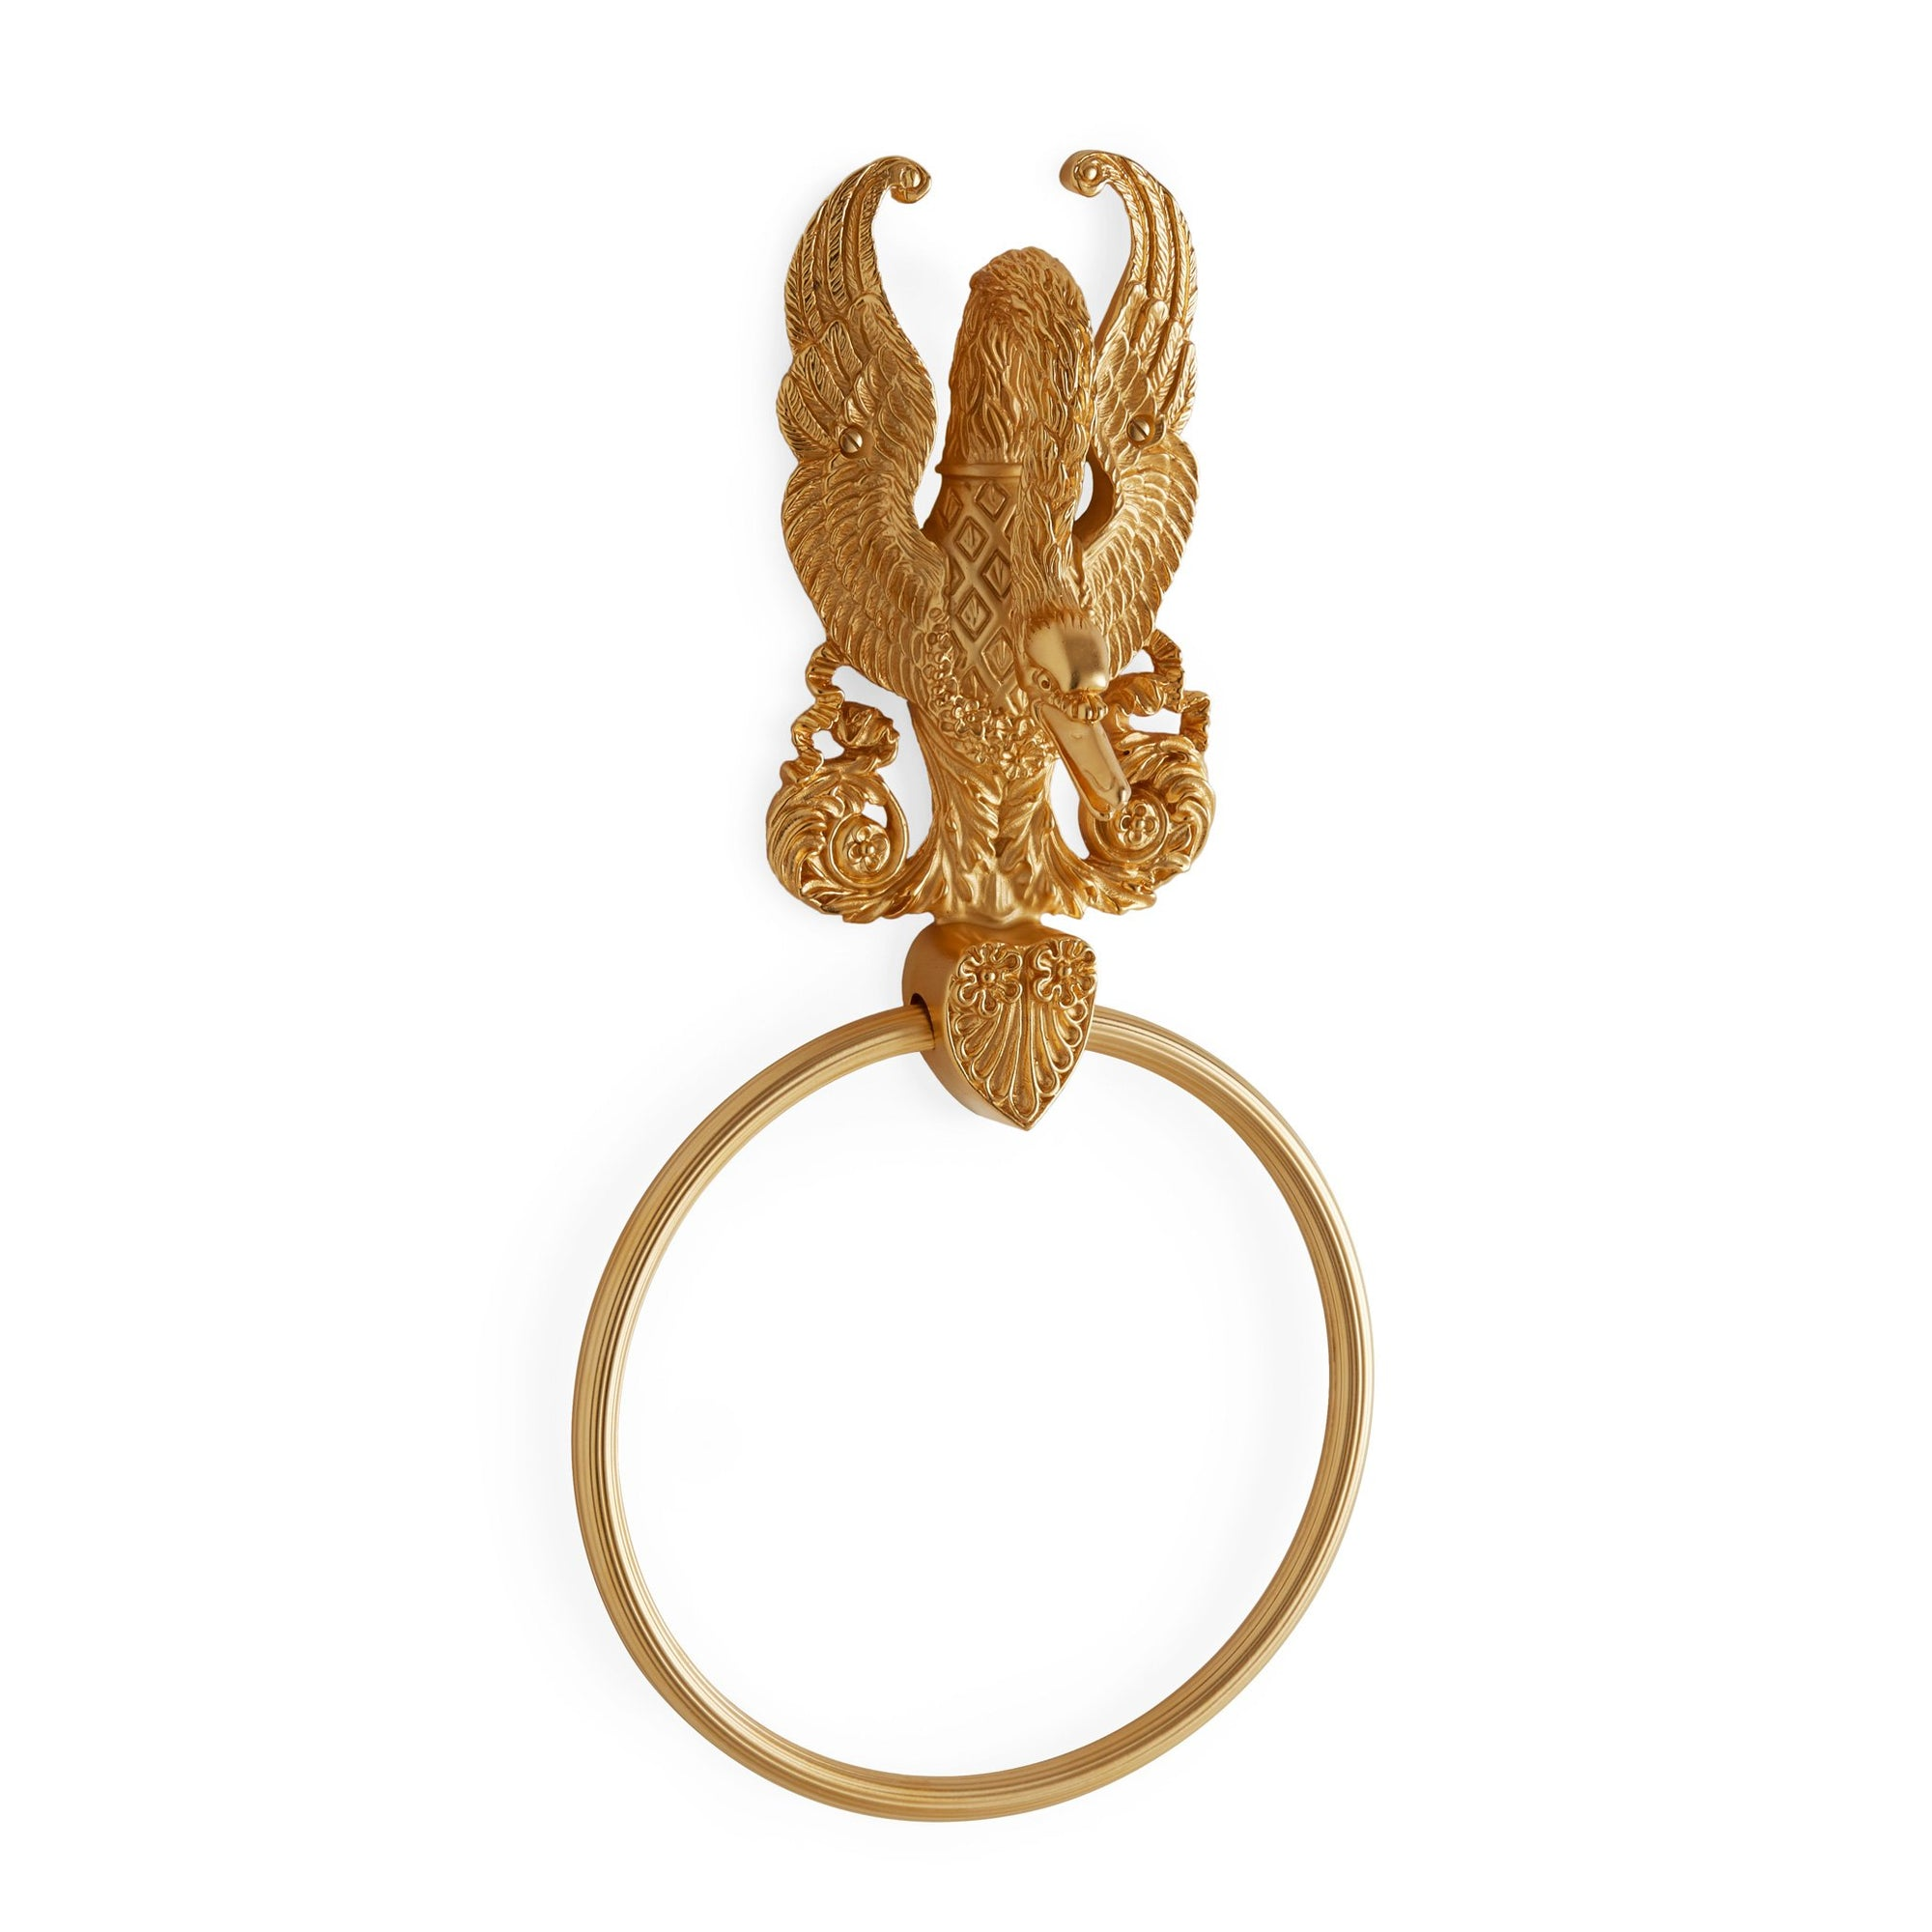 3426-GP Sherle Wagner International Imperial Swan Towel Ring in Gold Plate metal finish